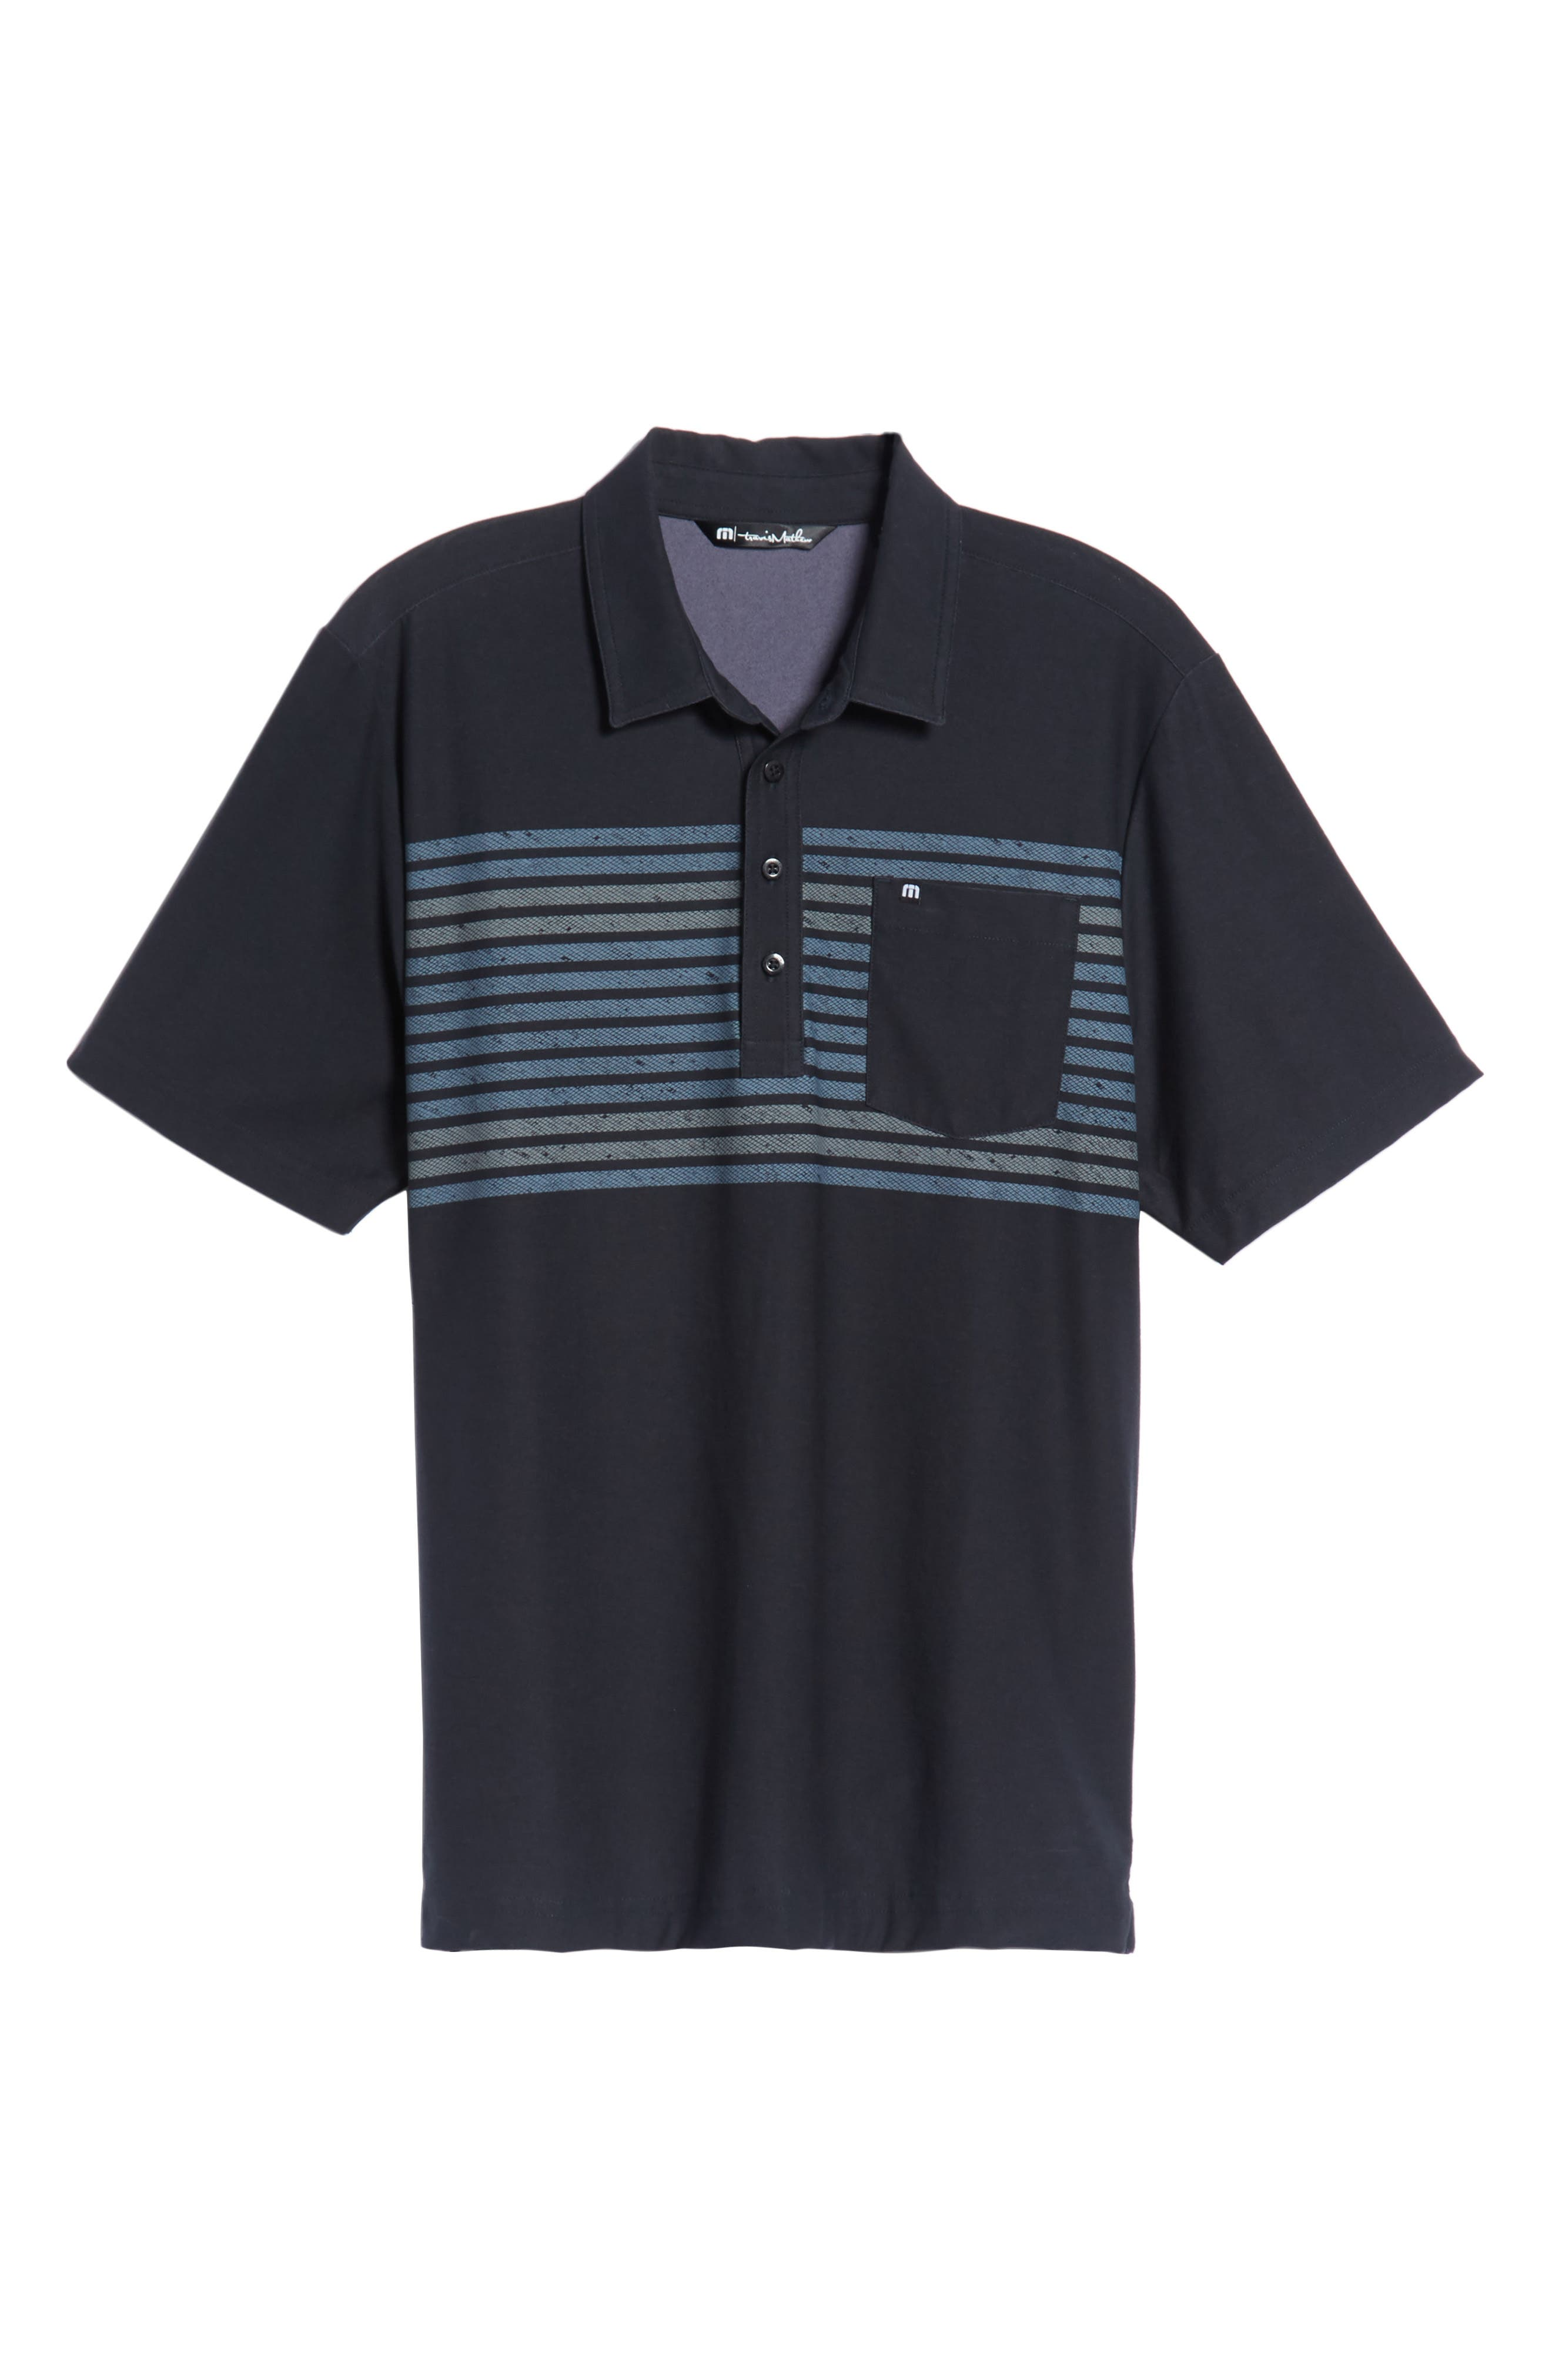 Sweet Lu Regular Fit Polo,                             Alternate thumbnail 6, color,                             BLACK/ GRISAILLE